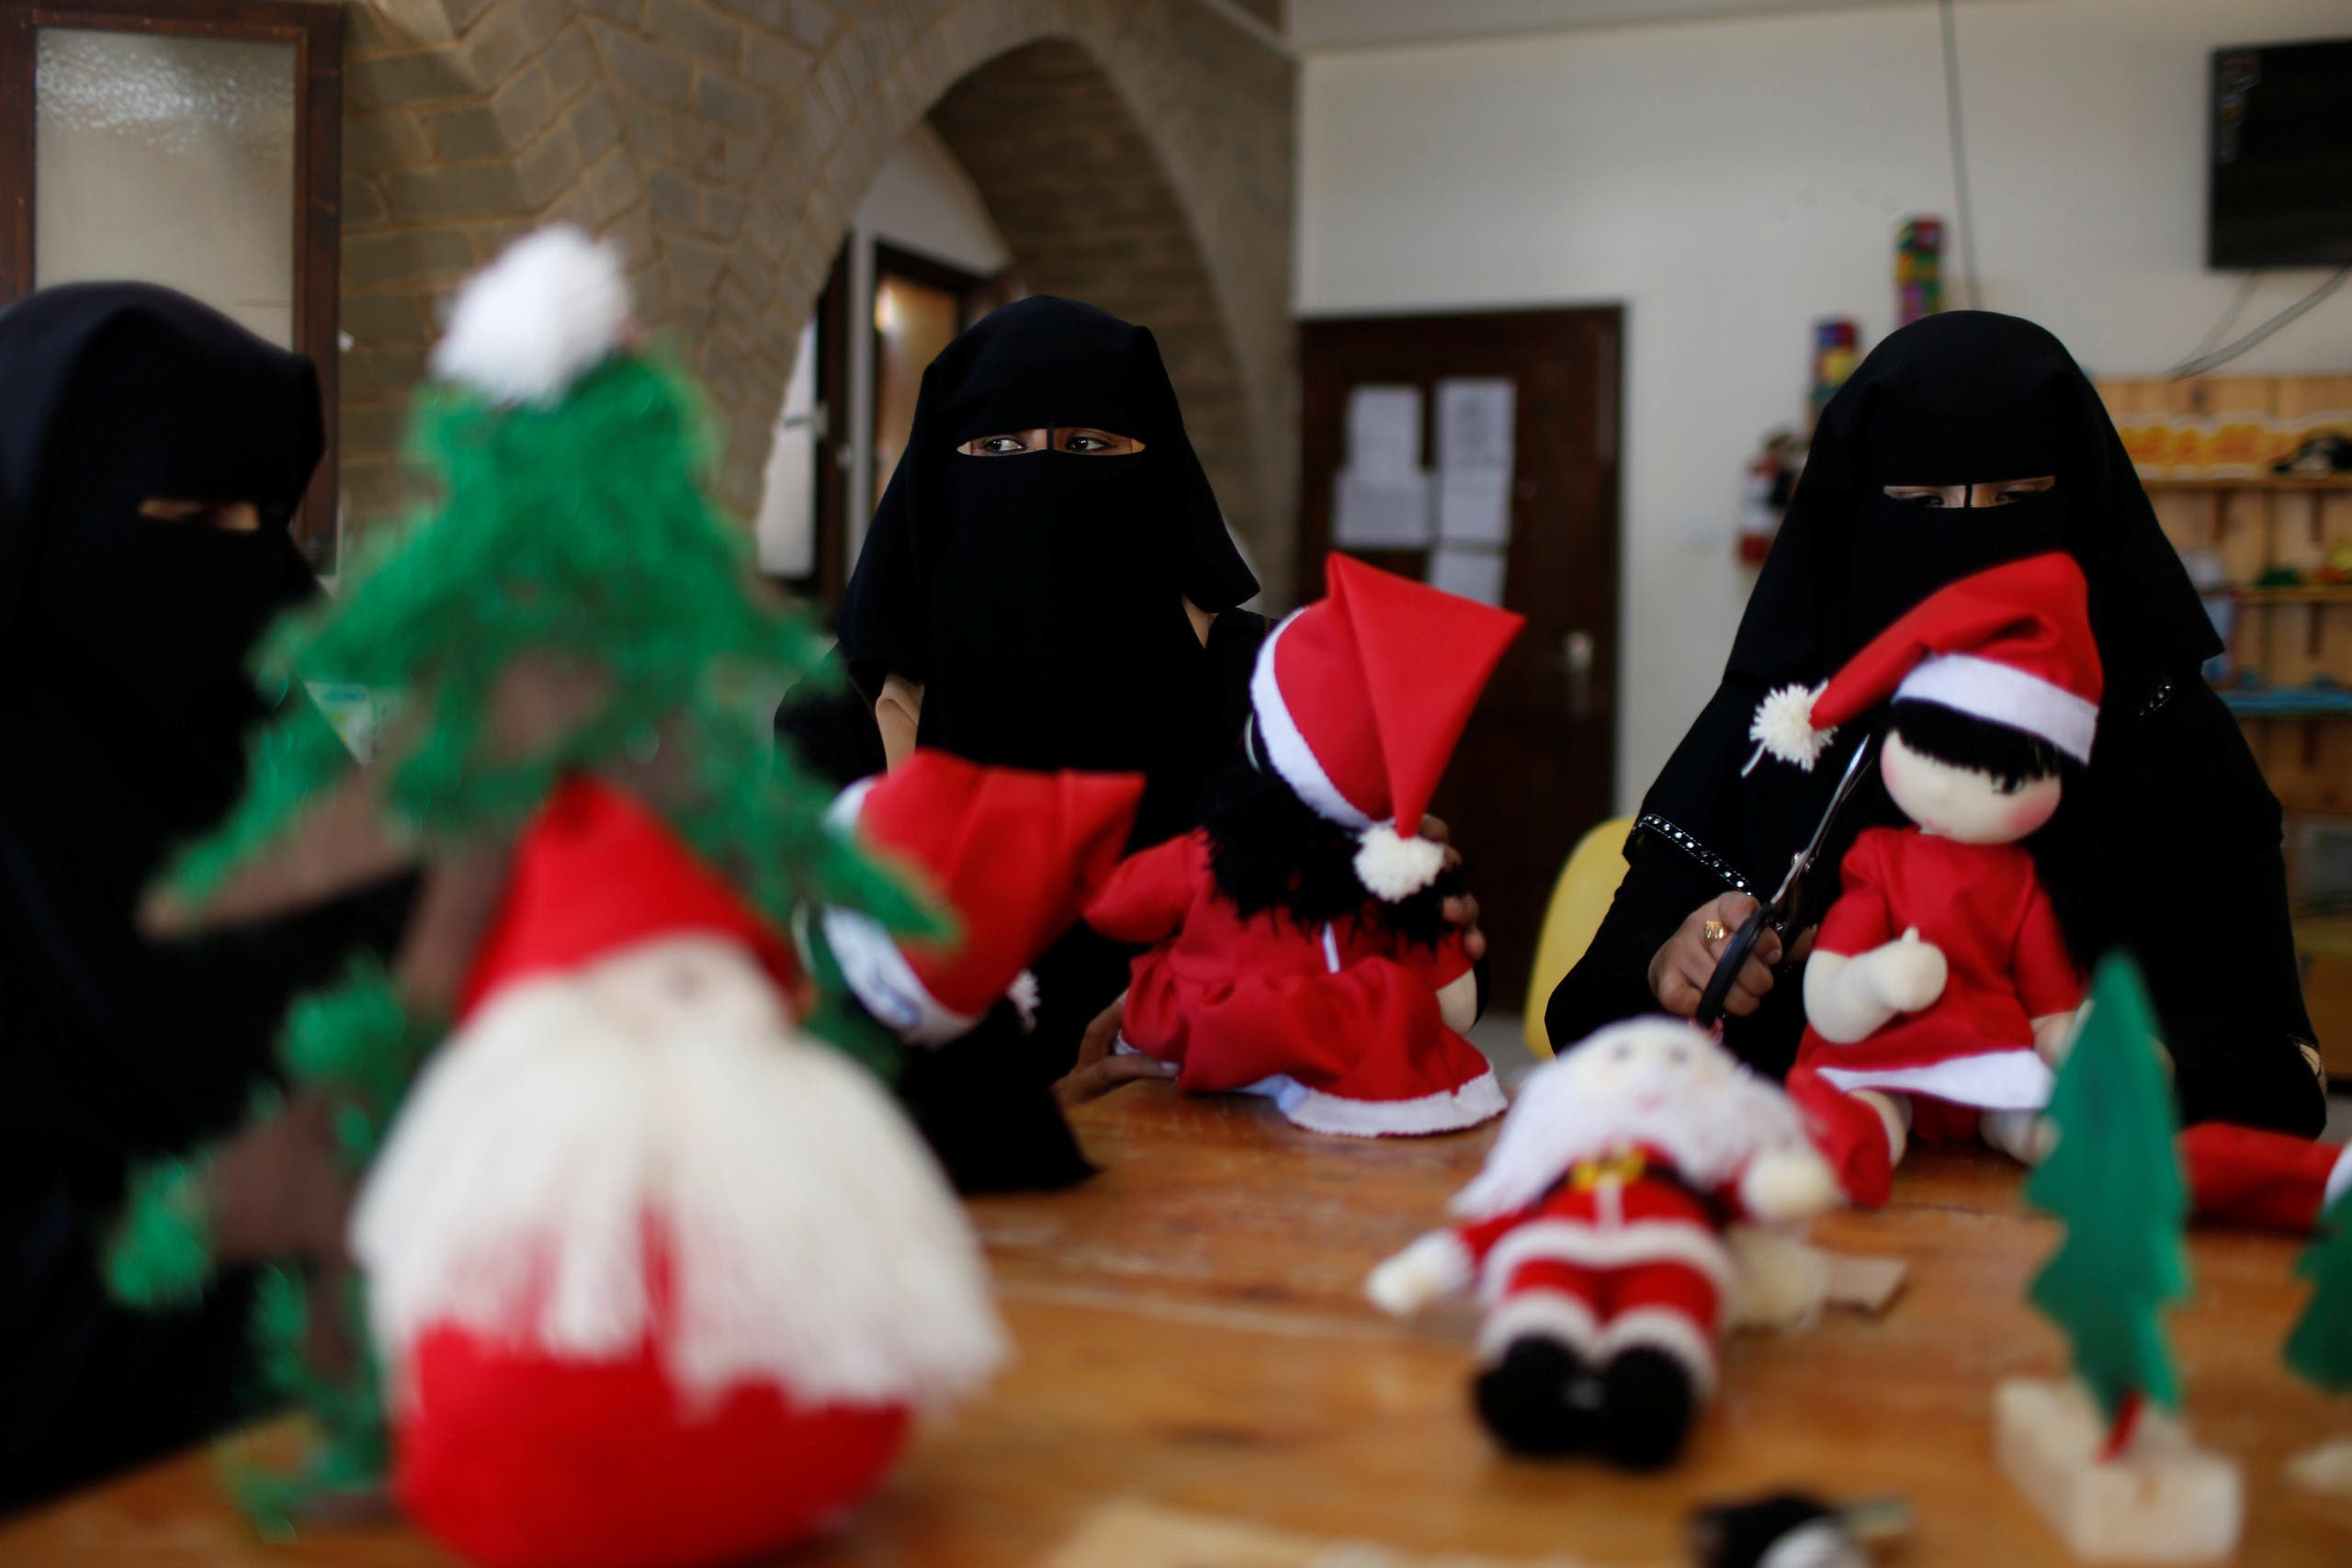 Palestinian women wearing face veil, niqab, make Santa-themed Christmas toys in the northern Gaza Strip December 29, 2019. Picture taken December 29, 2019. REUTERS